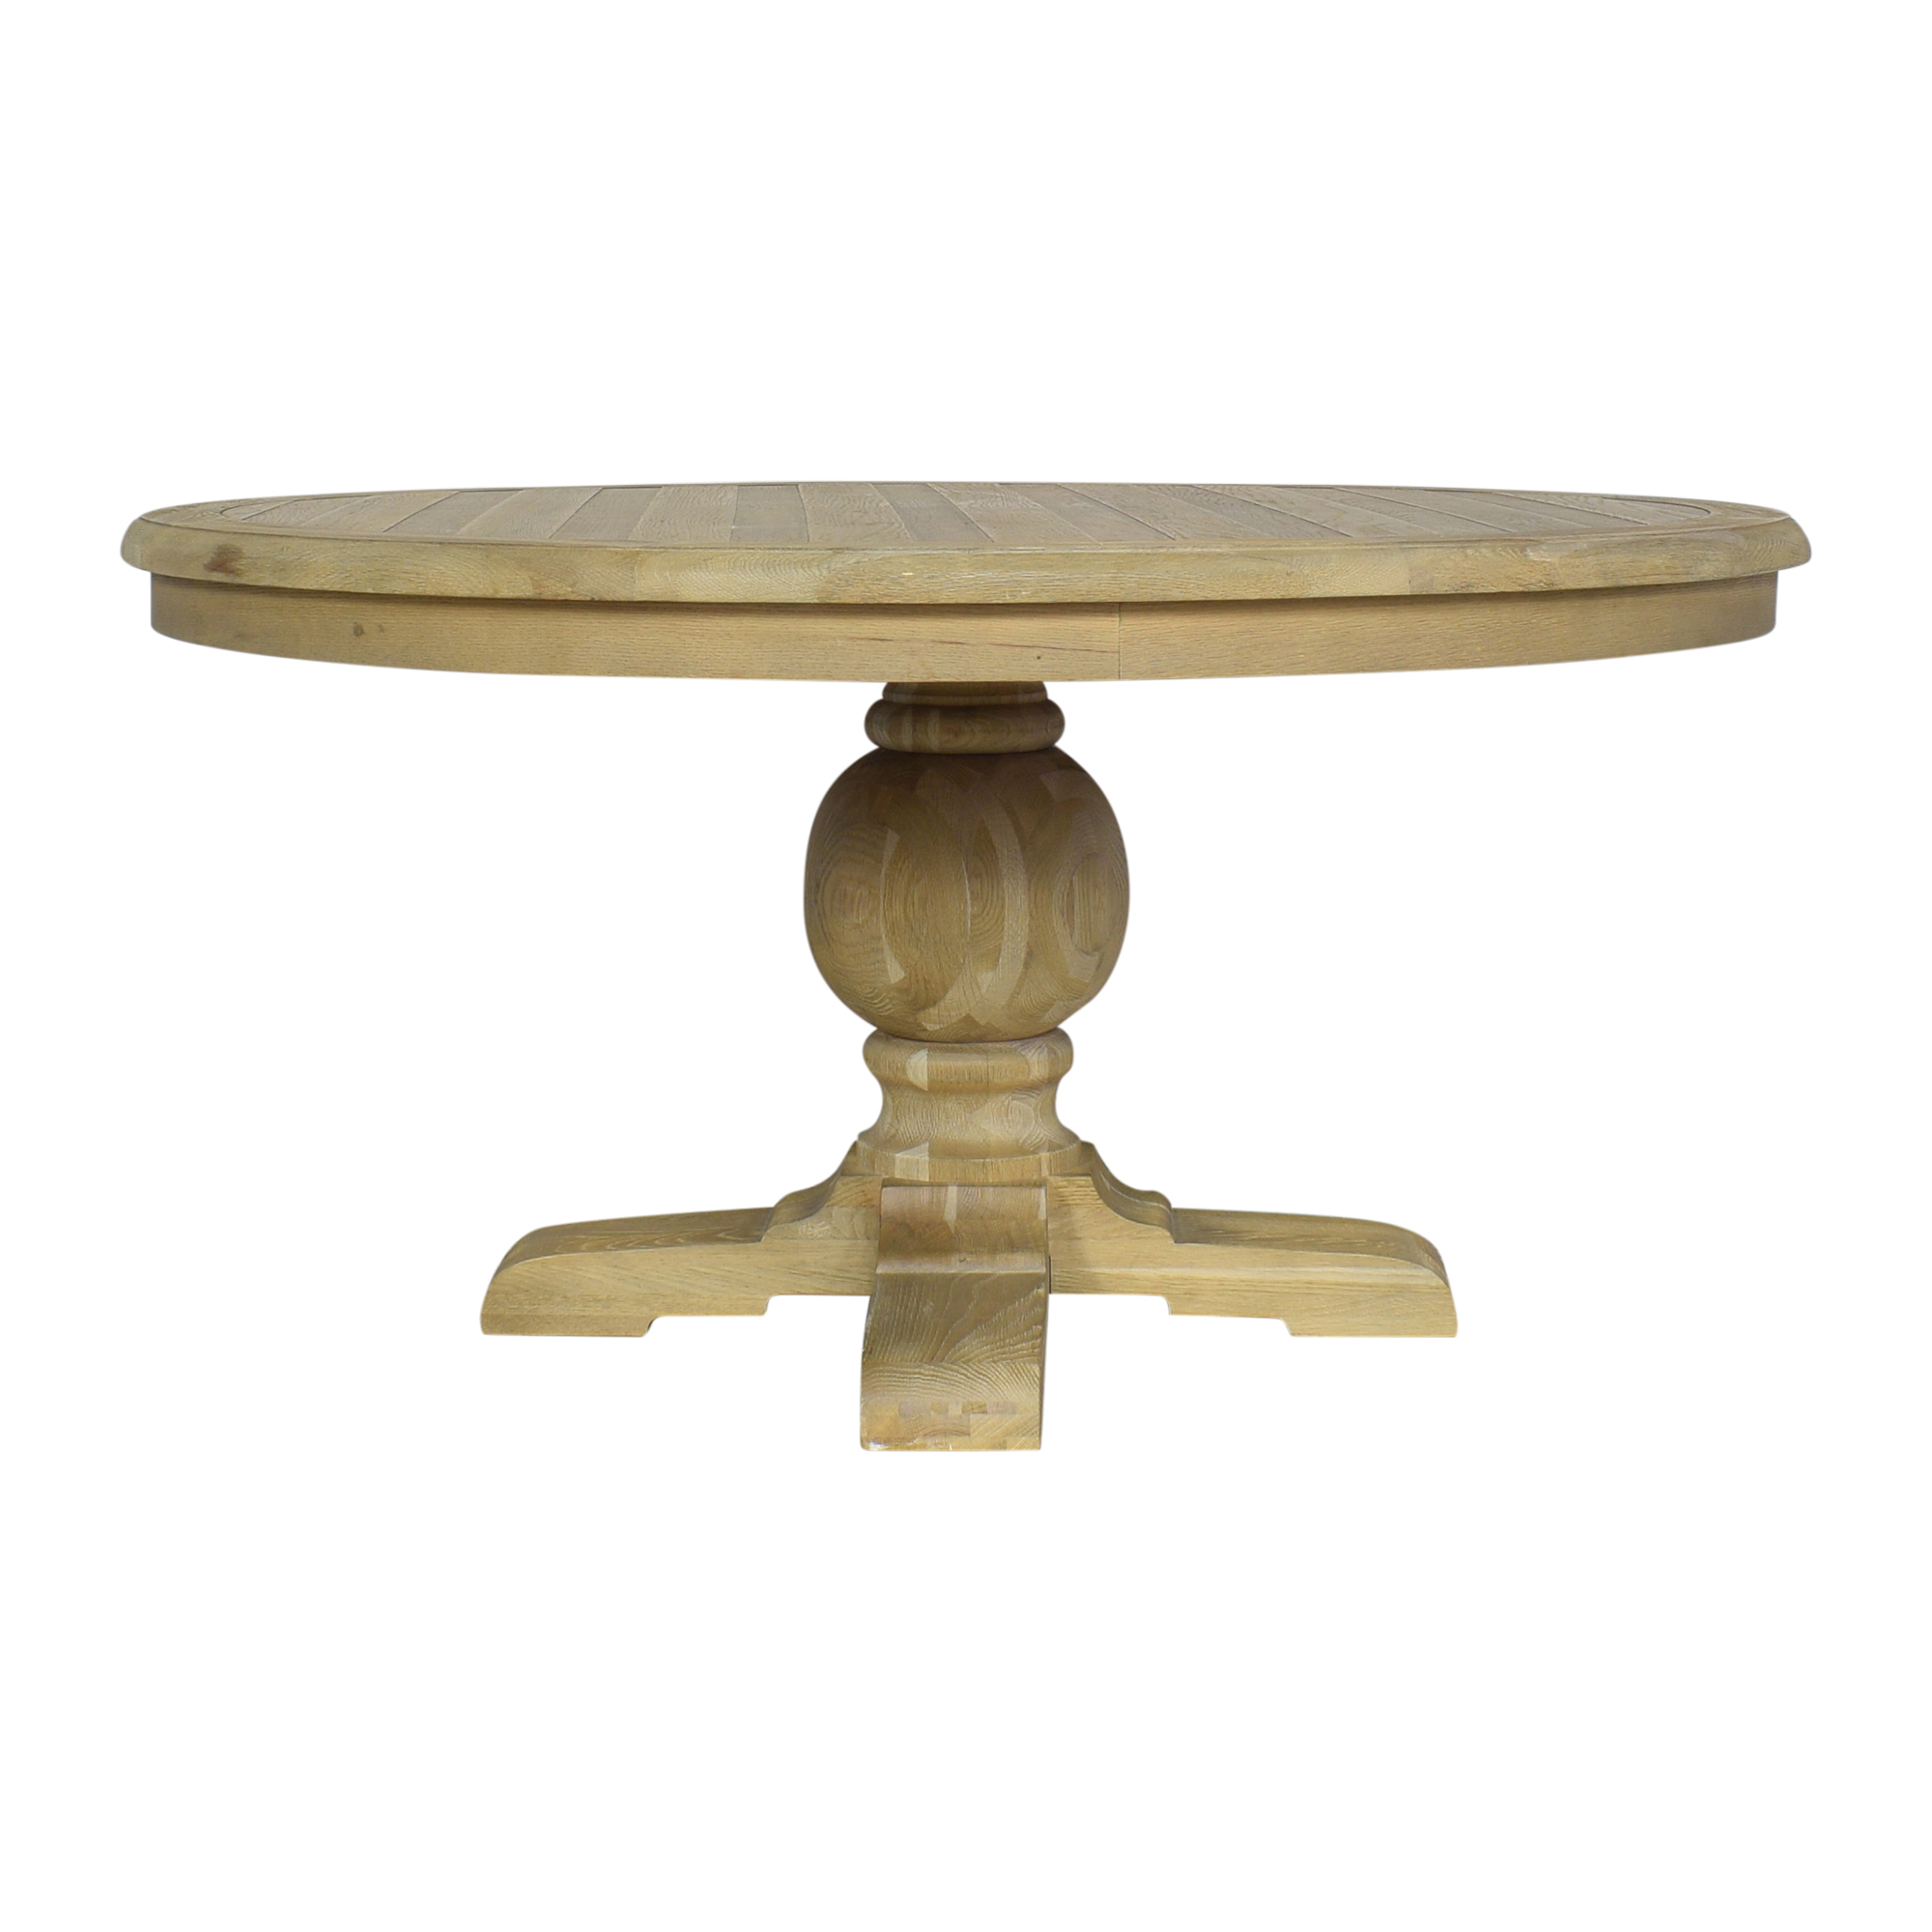 Zin Home Zin Home Kingdom Round Pedestal Dining Table gray